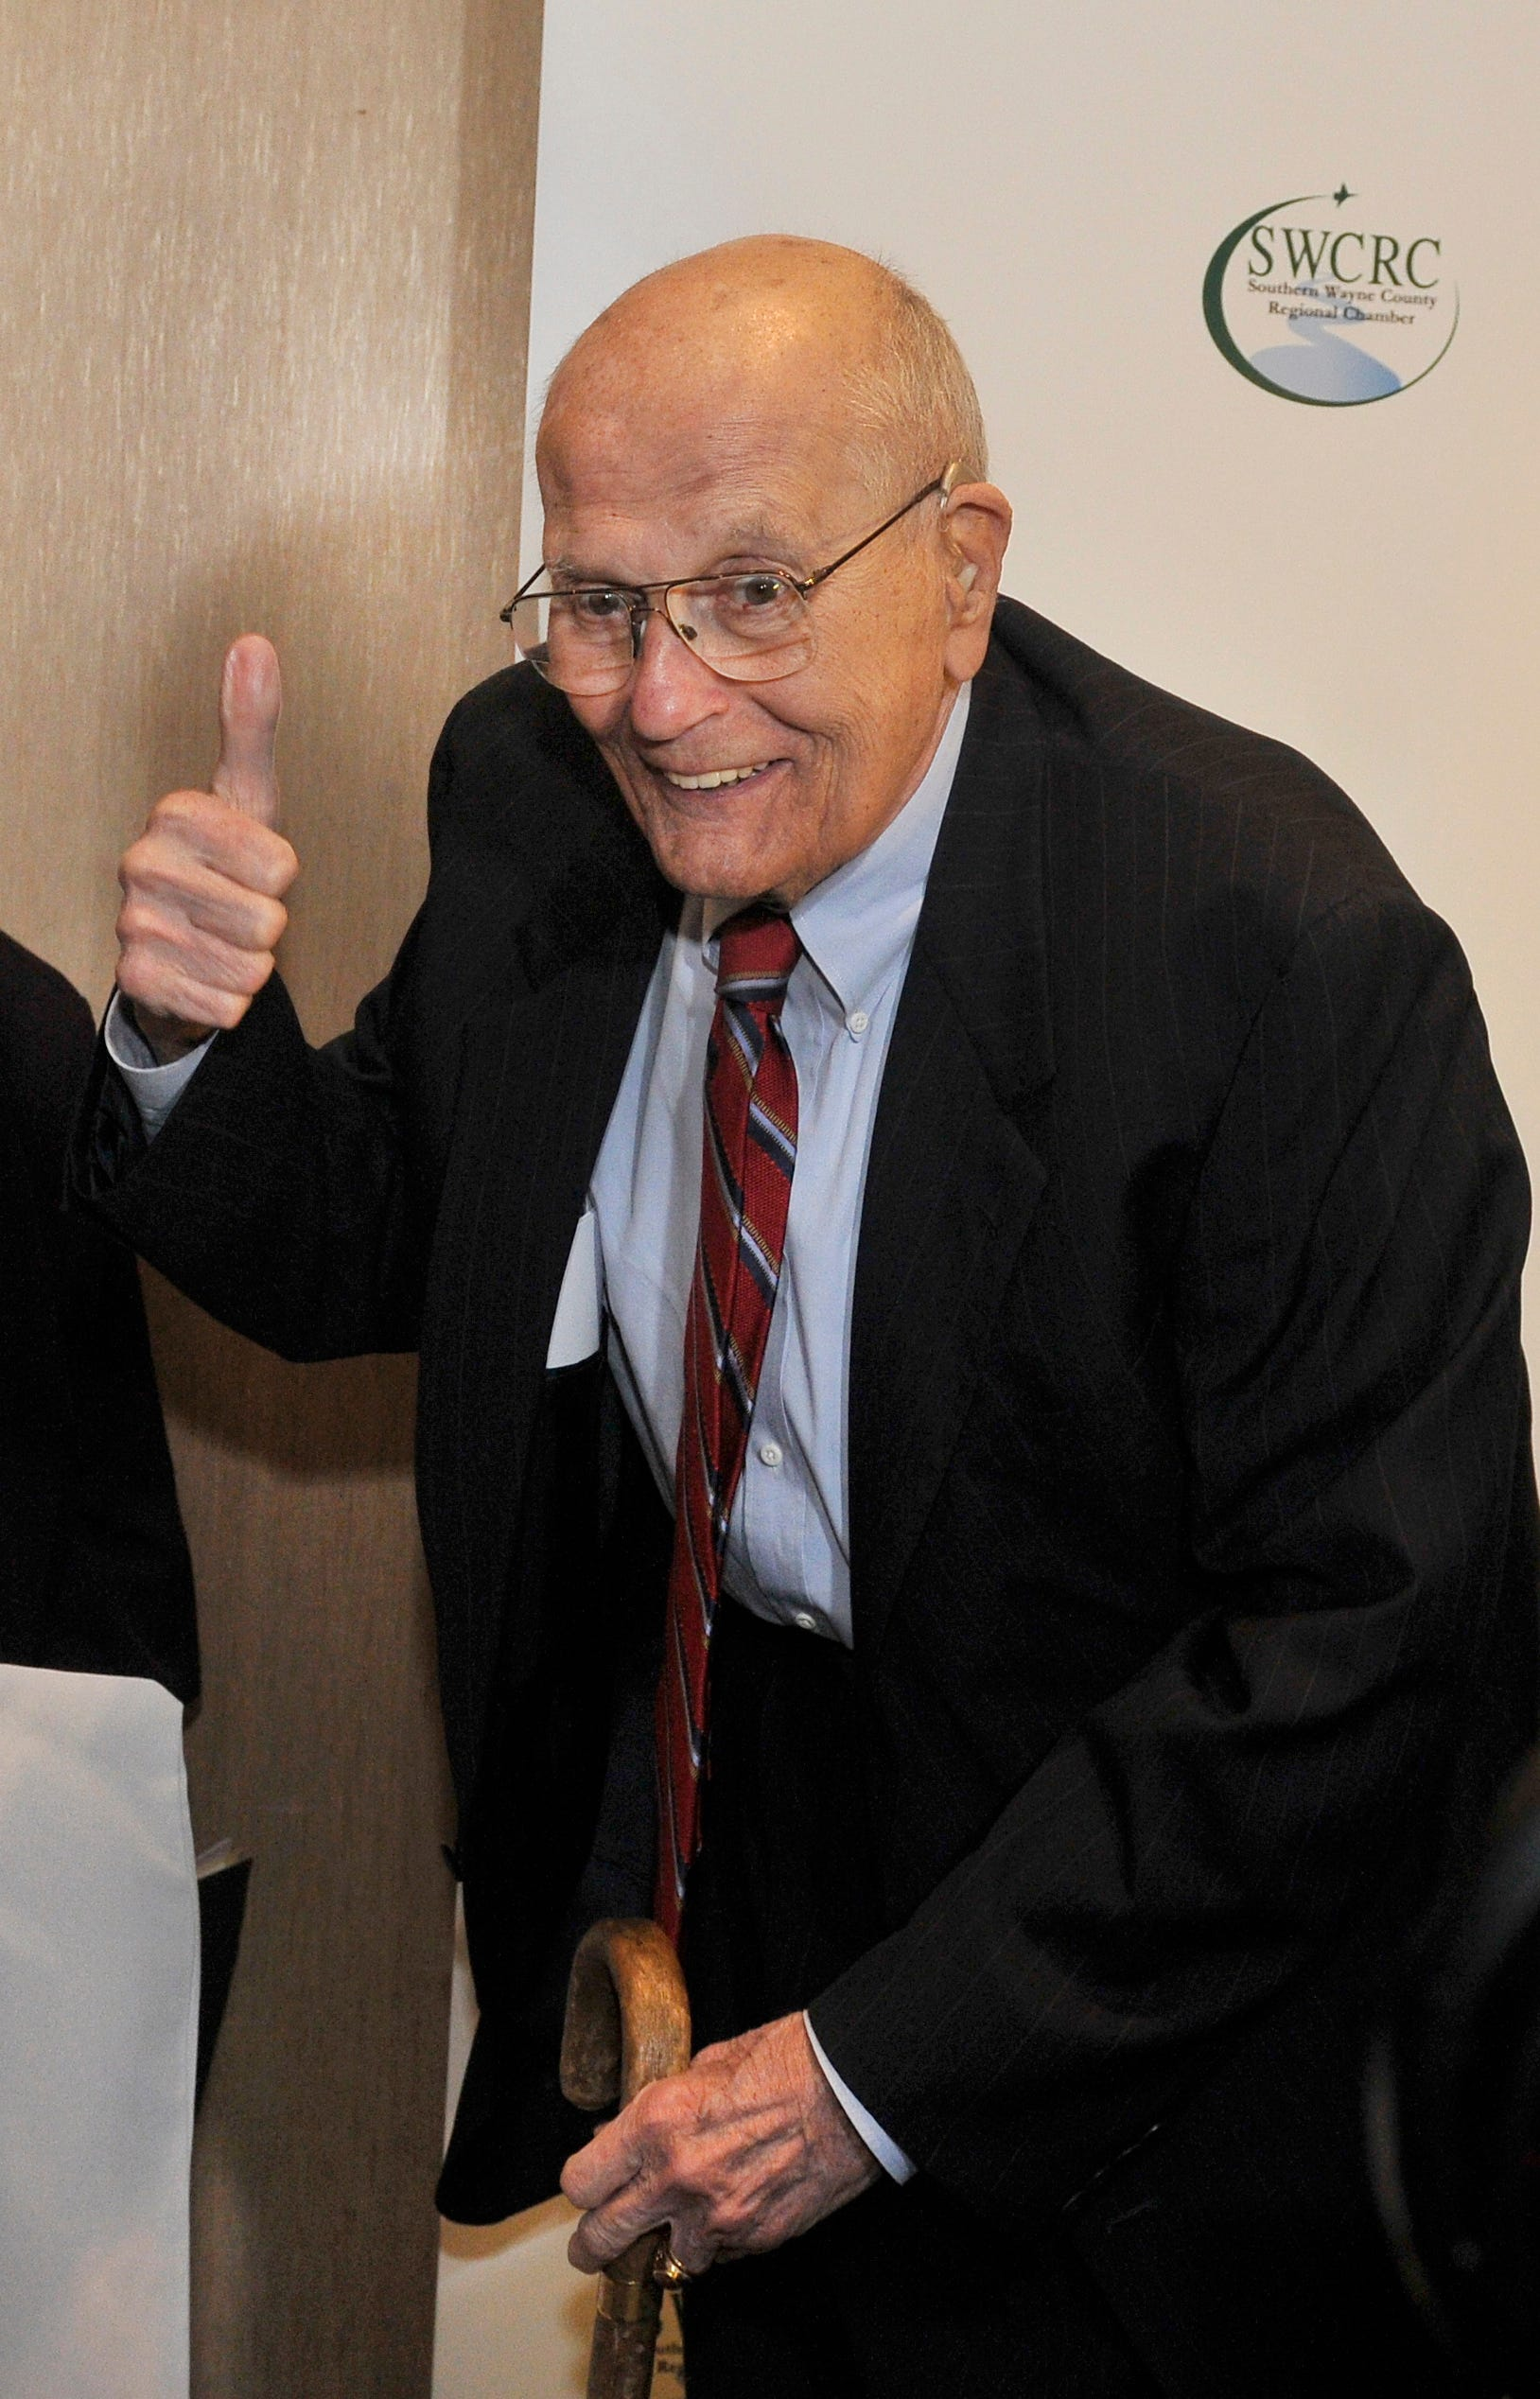 John Dingell went from 'Dean of House' to 'Dean of Twitter'